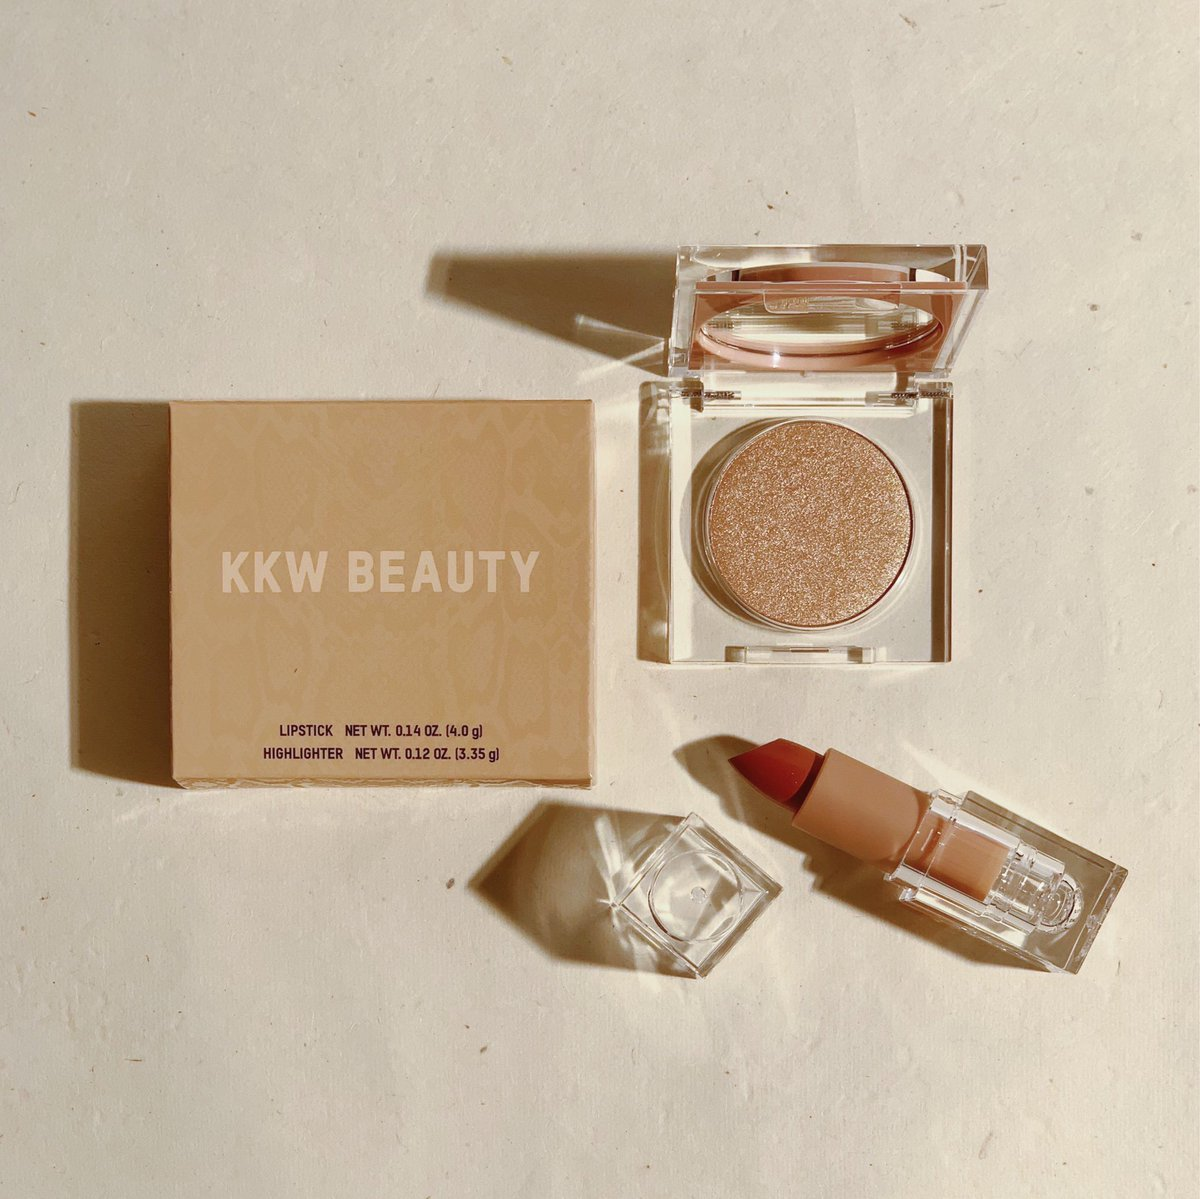 My new @kkwbeauty limited edition Crème Lipstick & Highlight Set!!Available exclusively at all @ultabeauty stores on October 20 #KKWBEAUTY